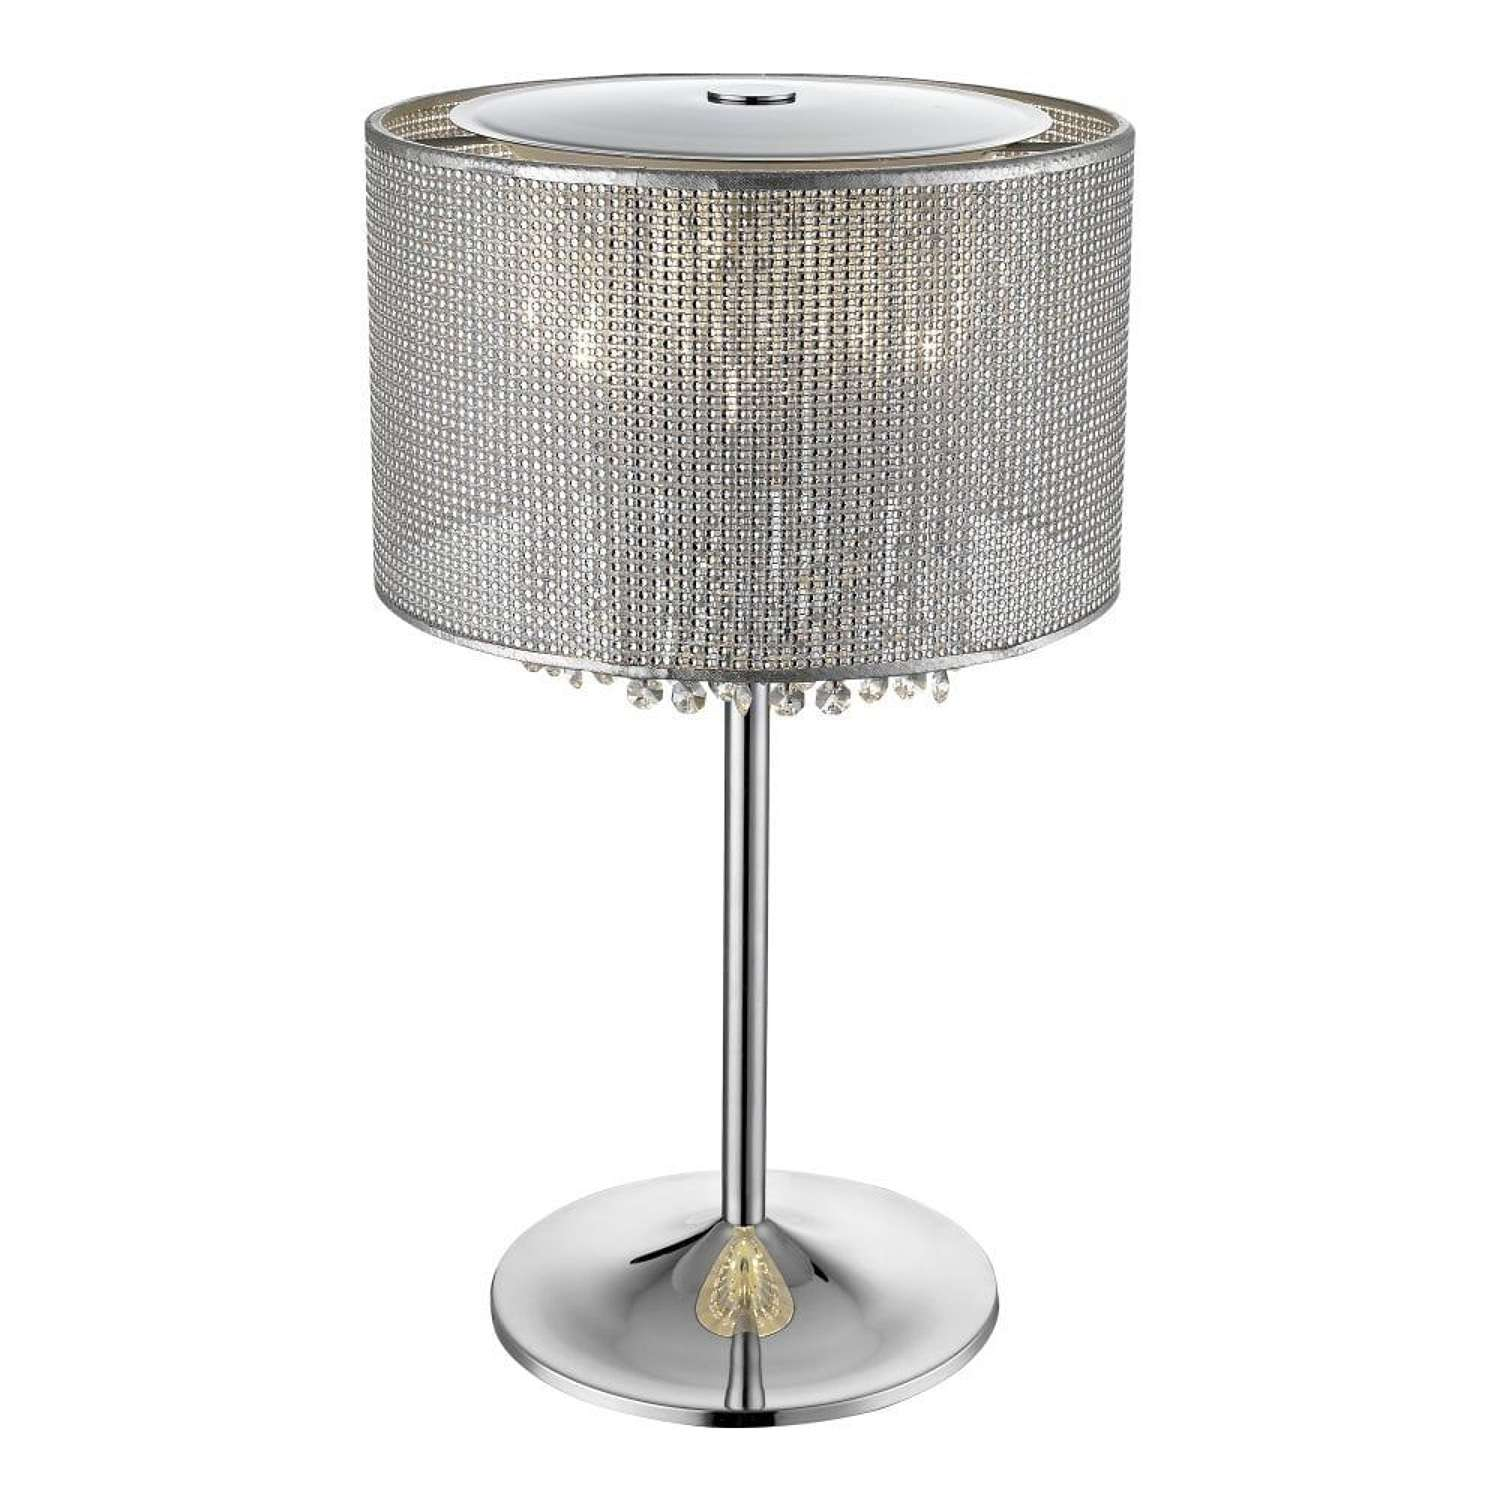 Stunning Table Lamp with Crystal Droplets